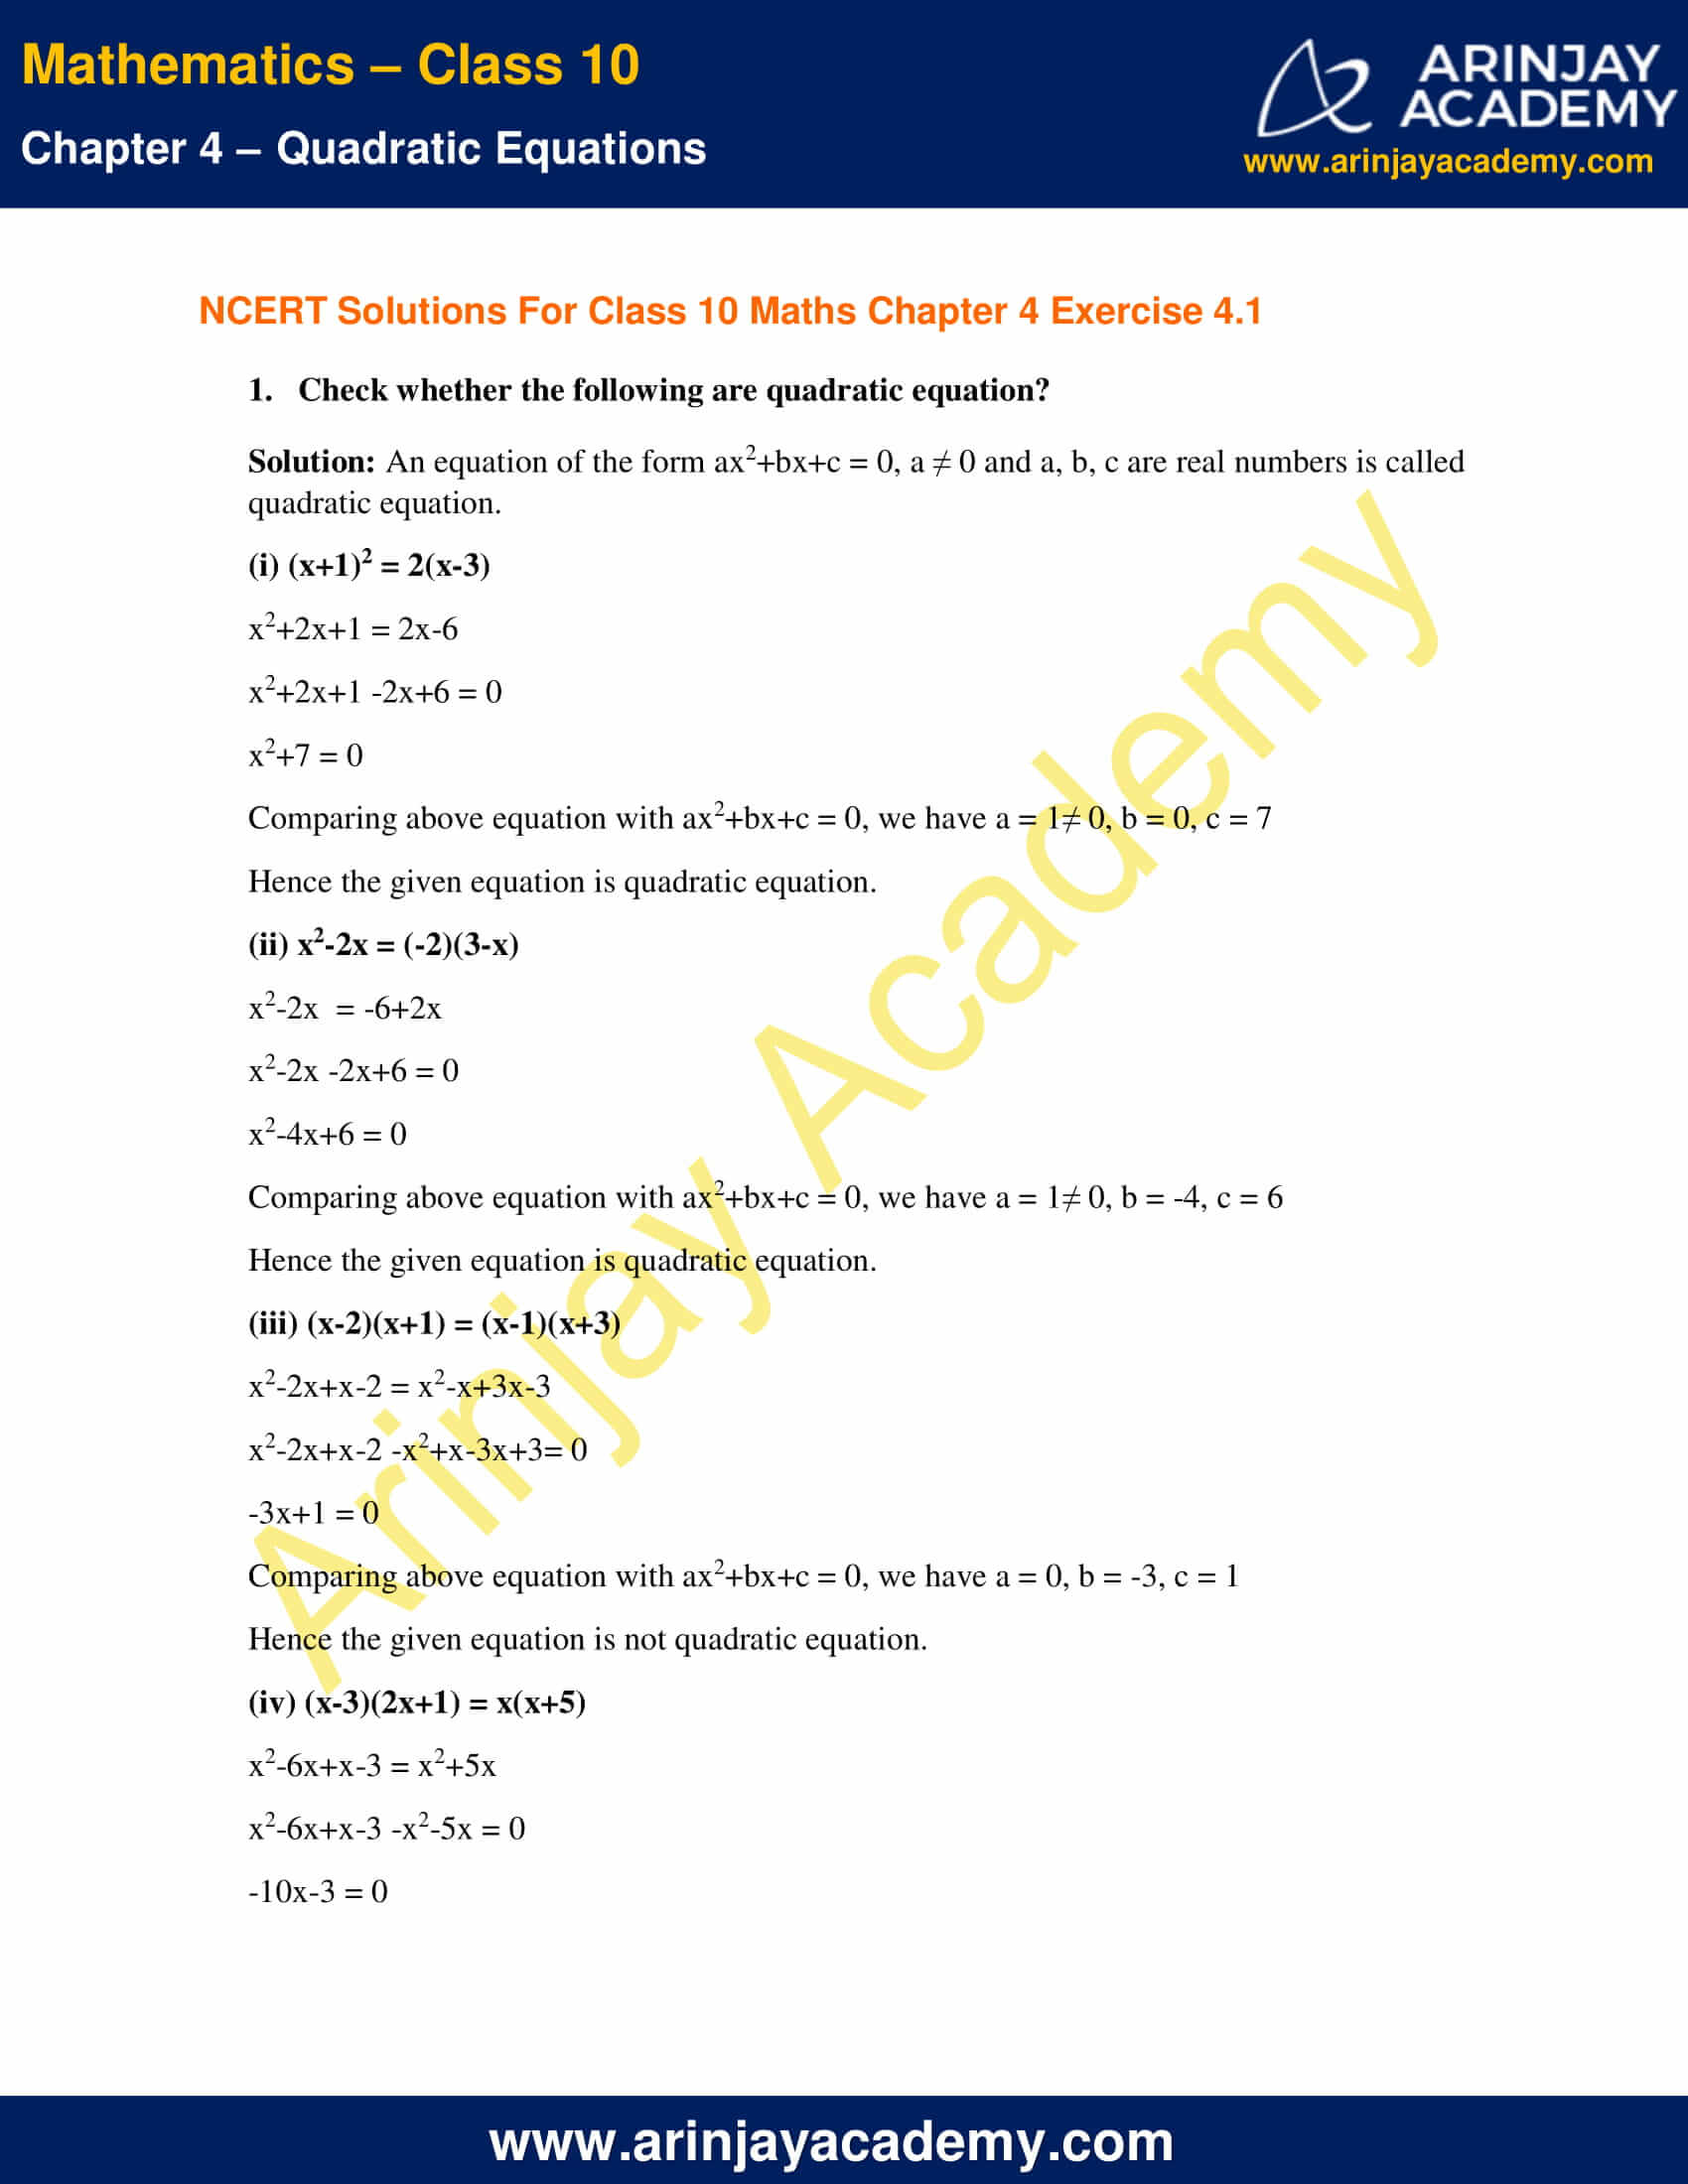 NCERT Solutions For Class 10 Maths Chapter 4 Exercise 4.1 image 1